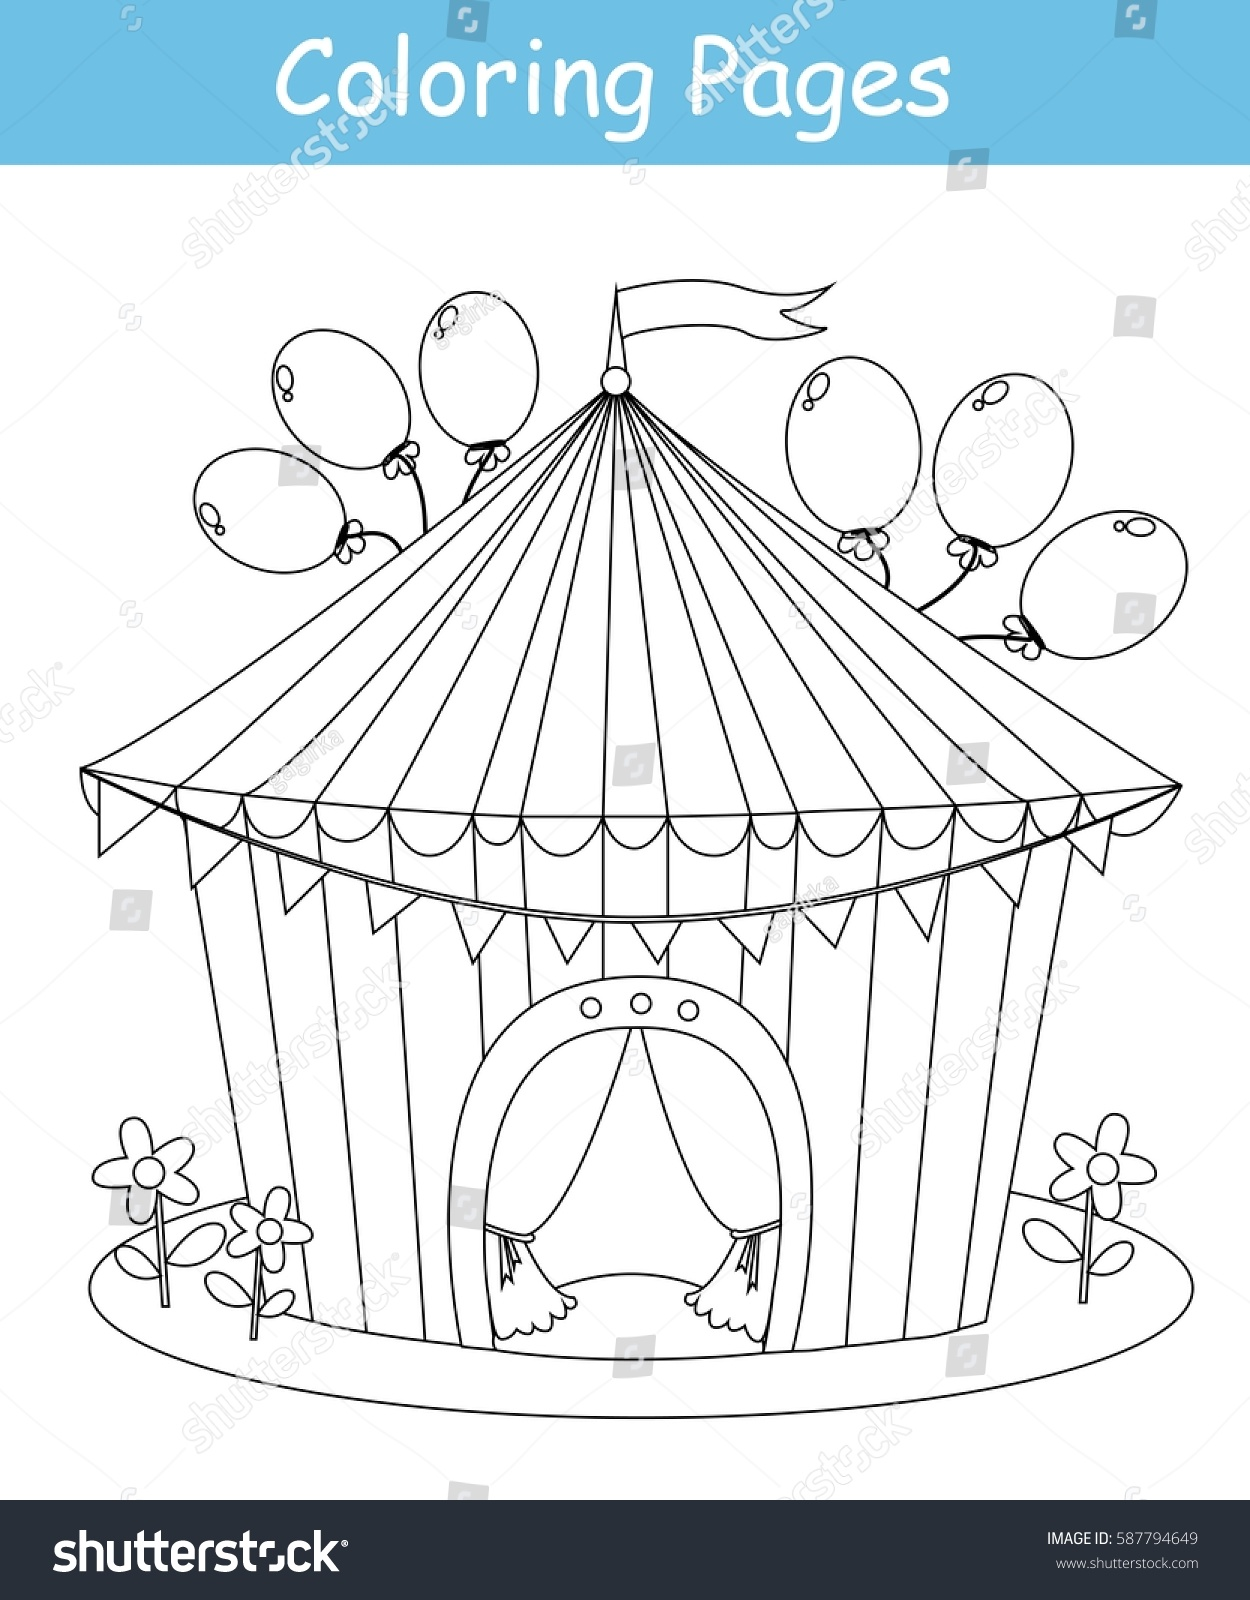 Coloring Page Circus Tent Vector